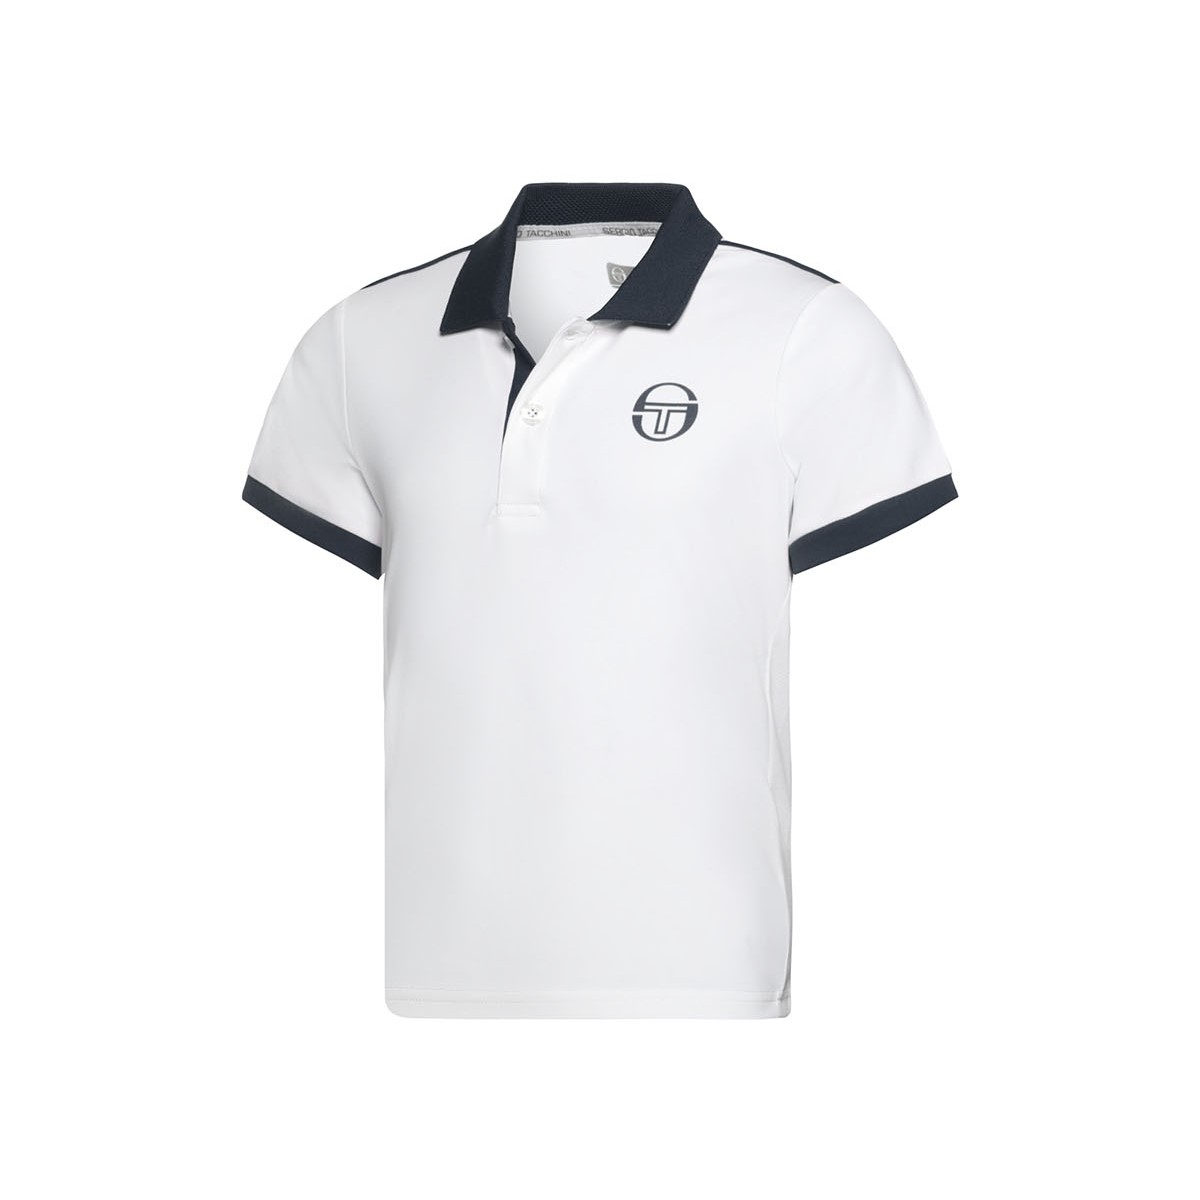 a3935d39 ... Sergio Tacchini New Polo Young Line Archivio White/Navy | eBay; Boys ...